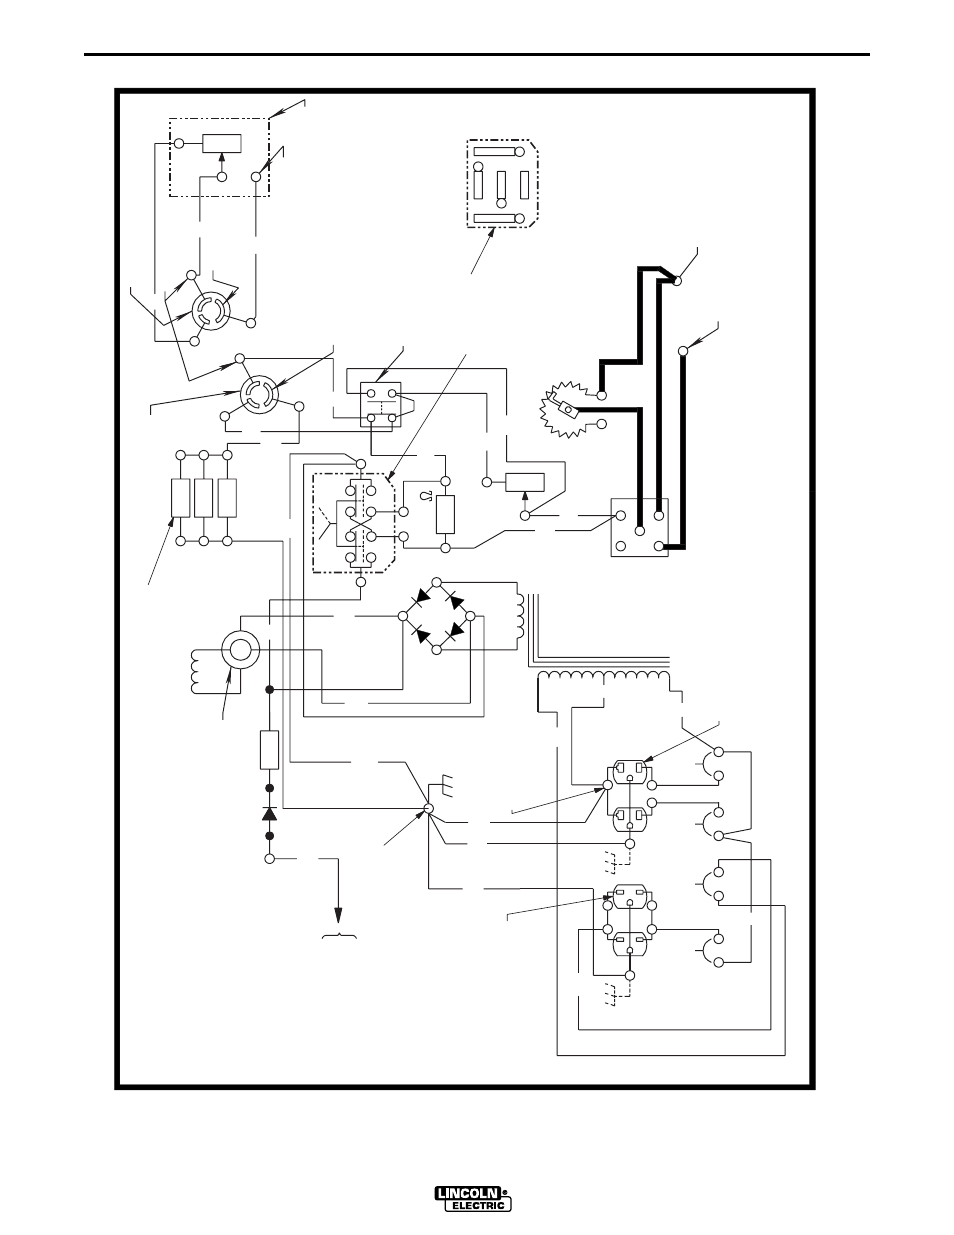 lincoln welder wiring diagram data wiring diagramlincoln welder wiring diagram wiring diagram data val lincoln welder remote wiring diagram lincoln ranger 9